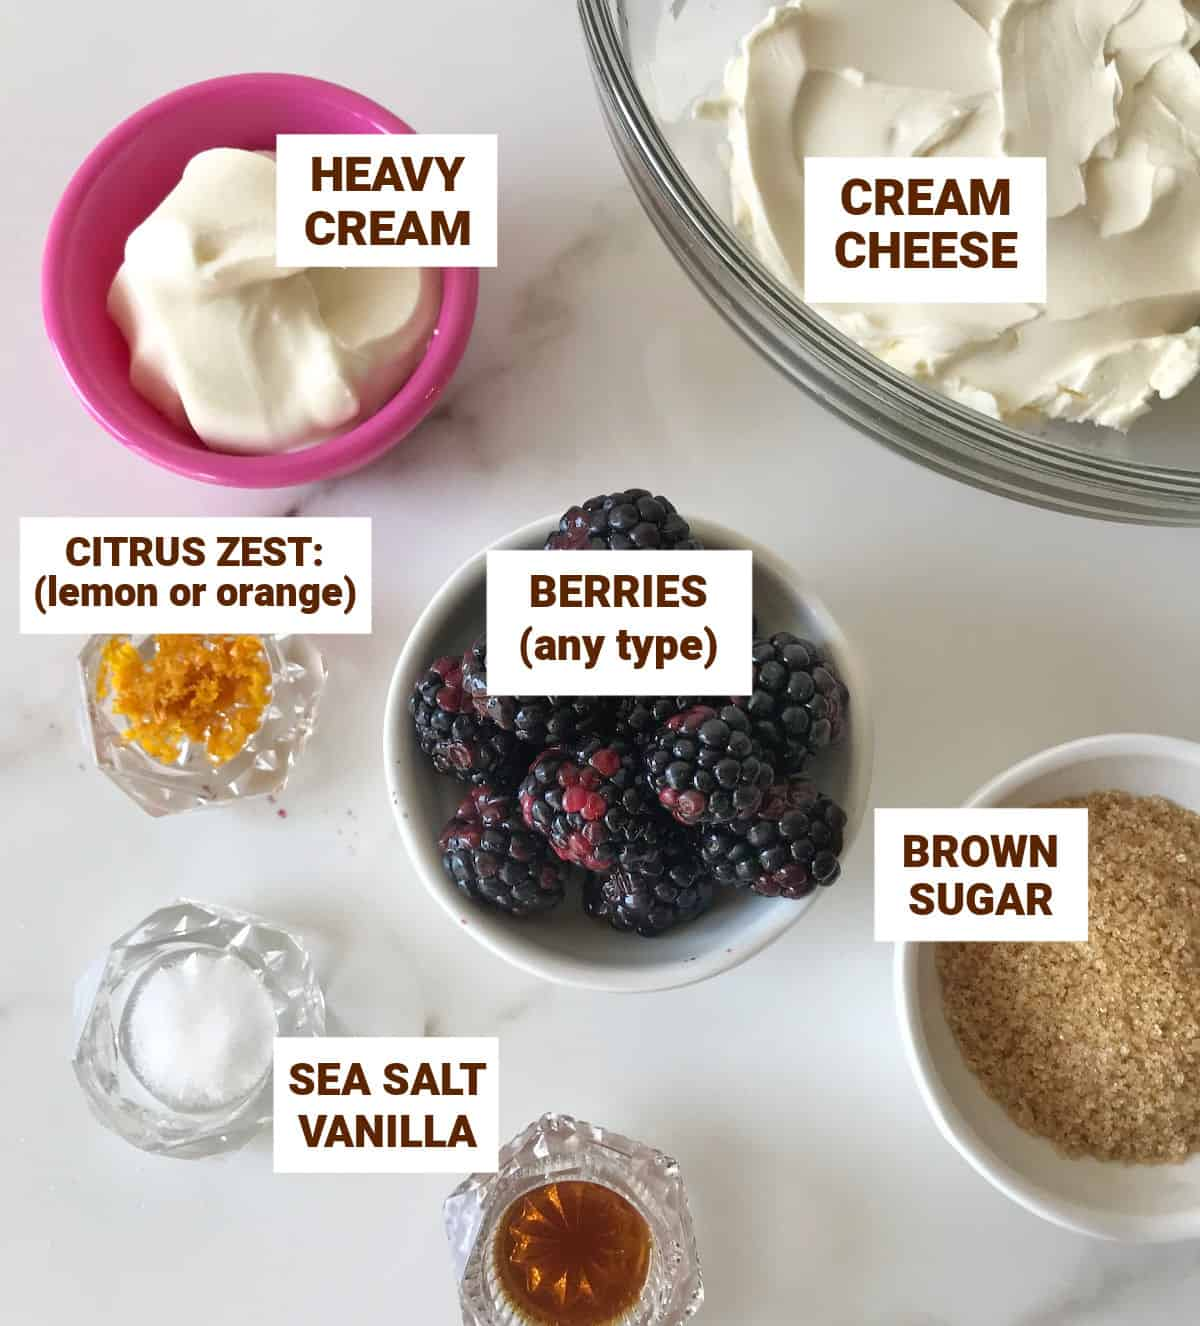 Ingredients for cheesecake berry ice cream in bowls on white surface including berries, cream, brown sugar, zest